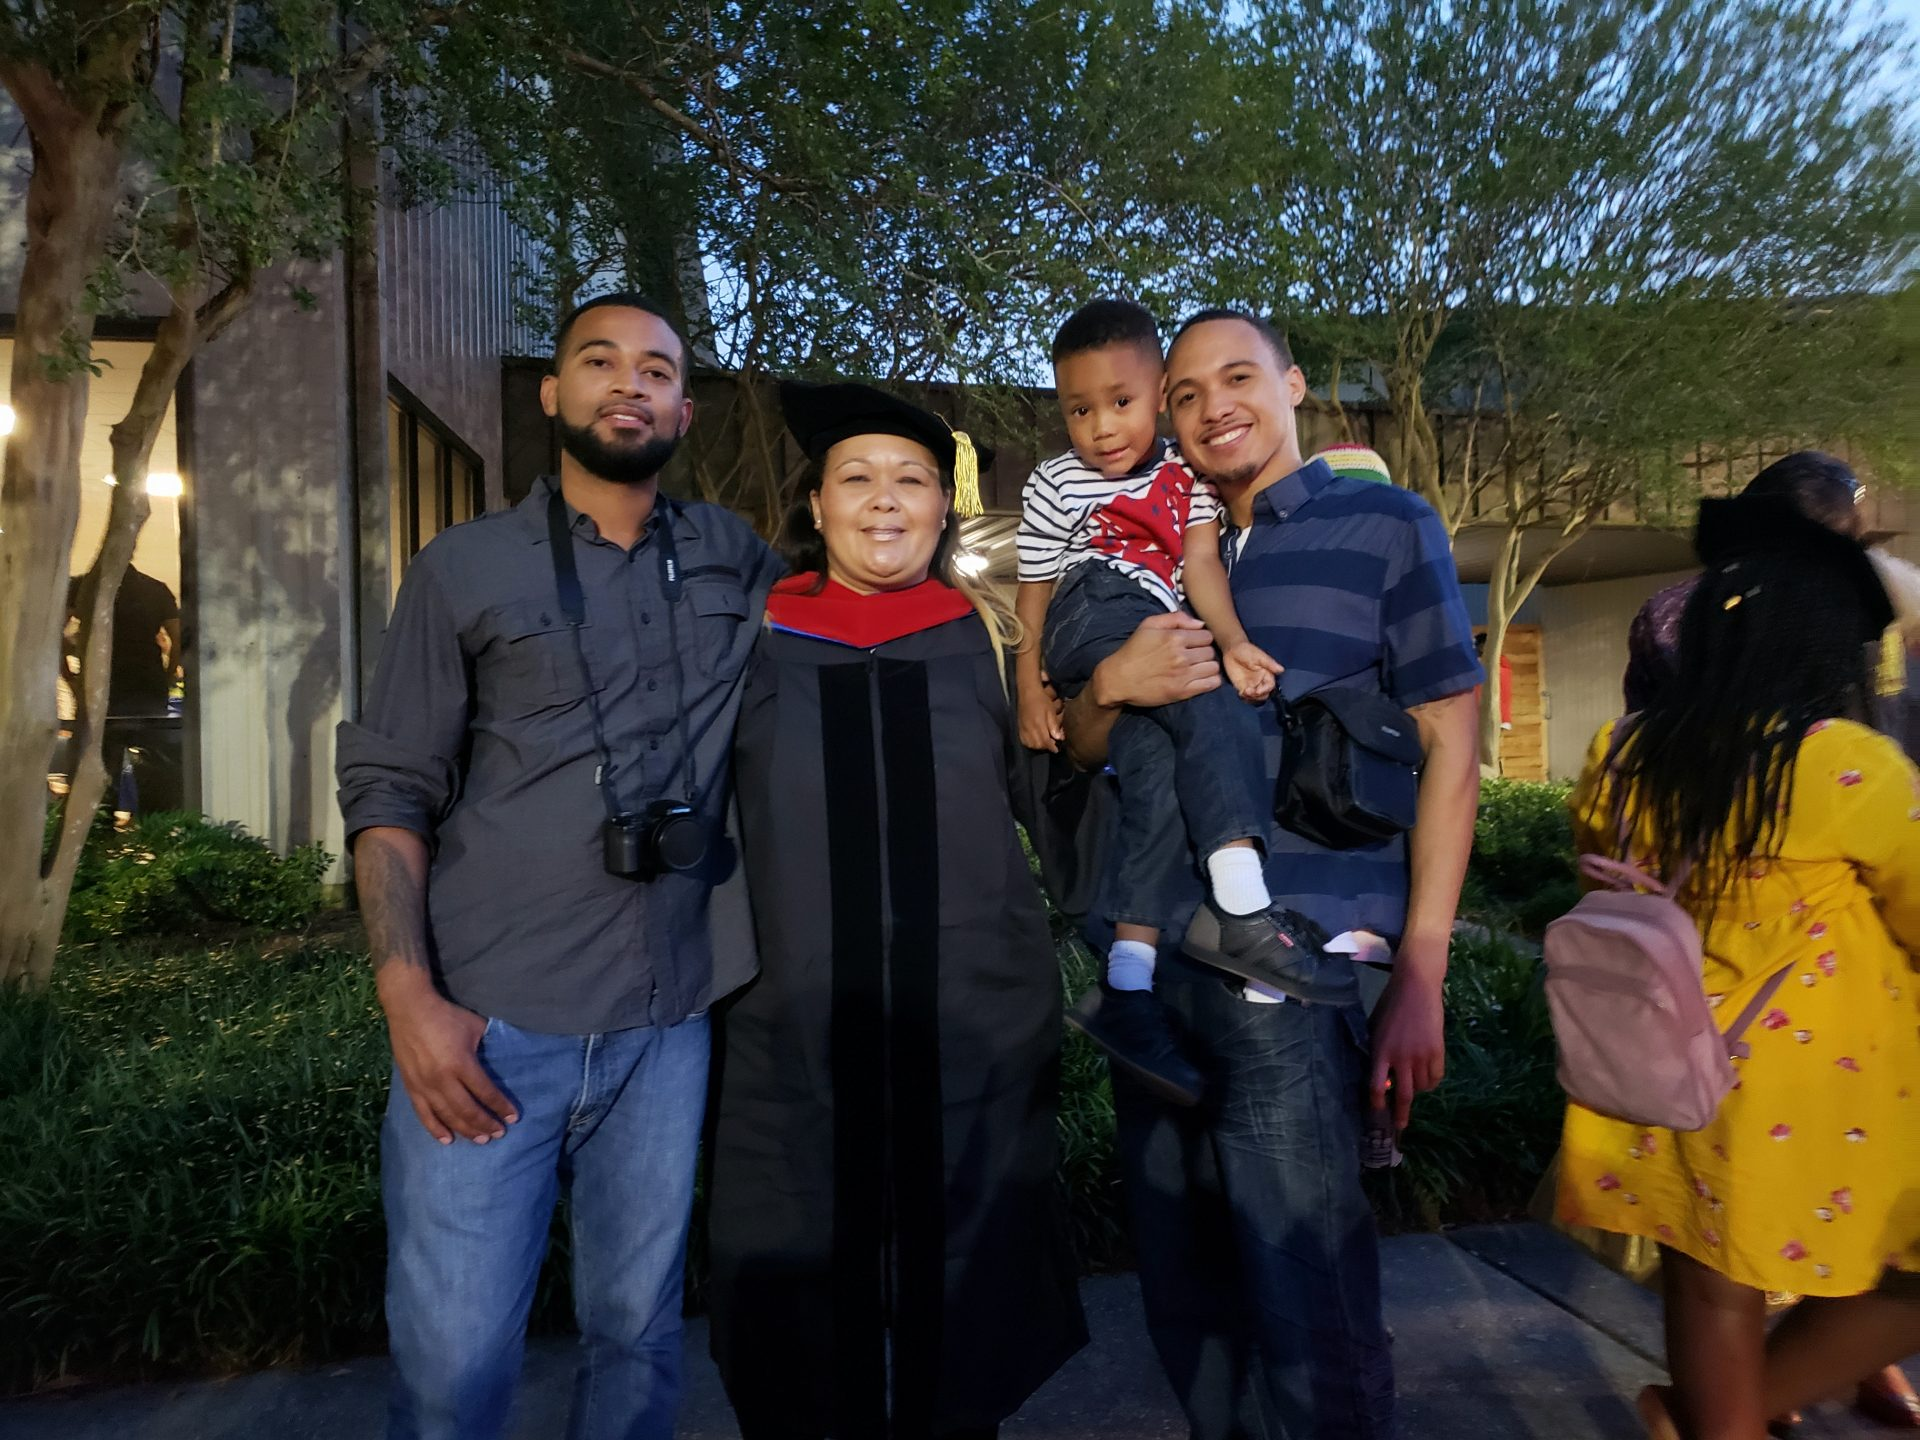 Mommy because of you I dared and succeeded  to become  Dr. Anna Arce, and because of you my children and grandchildren will strive and reach even higher heights. You are our strength and you will live on in us.  We love you so dearly.